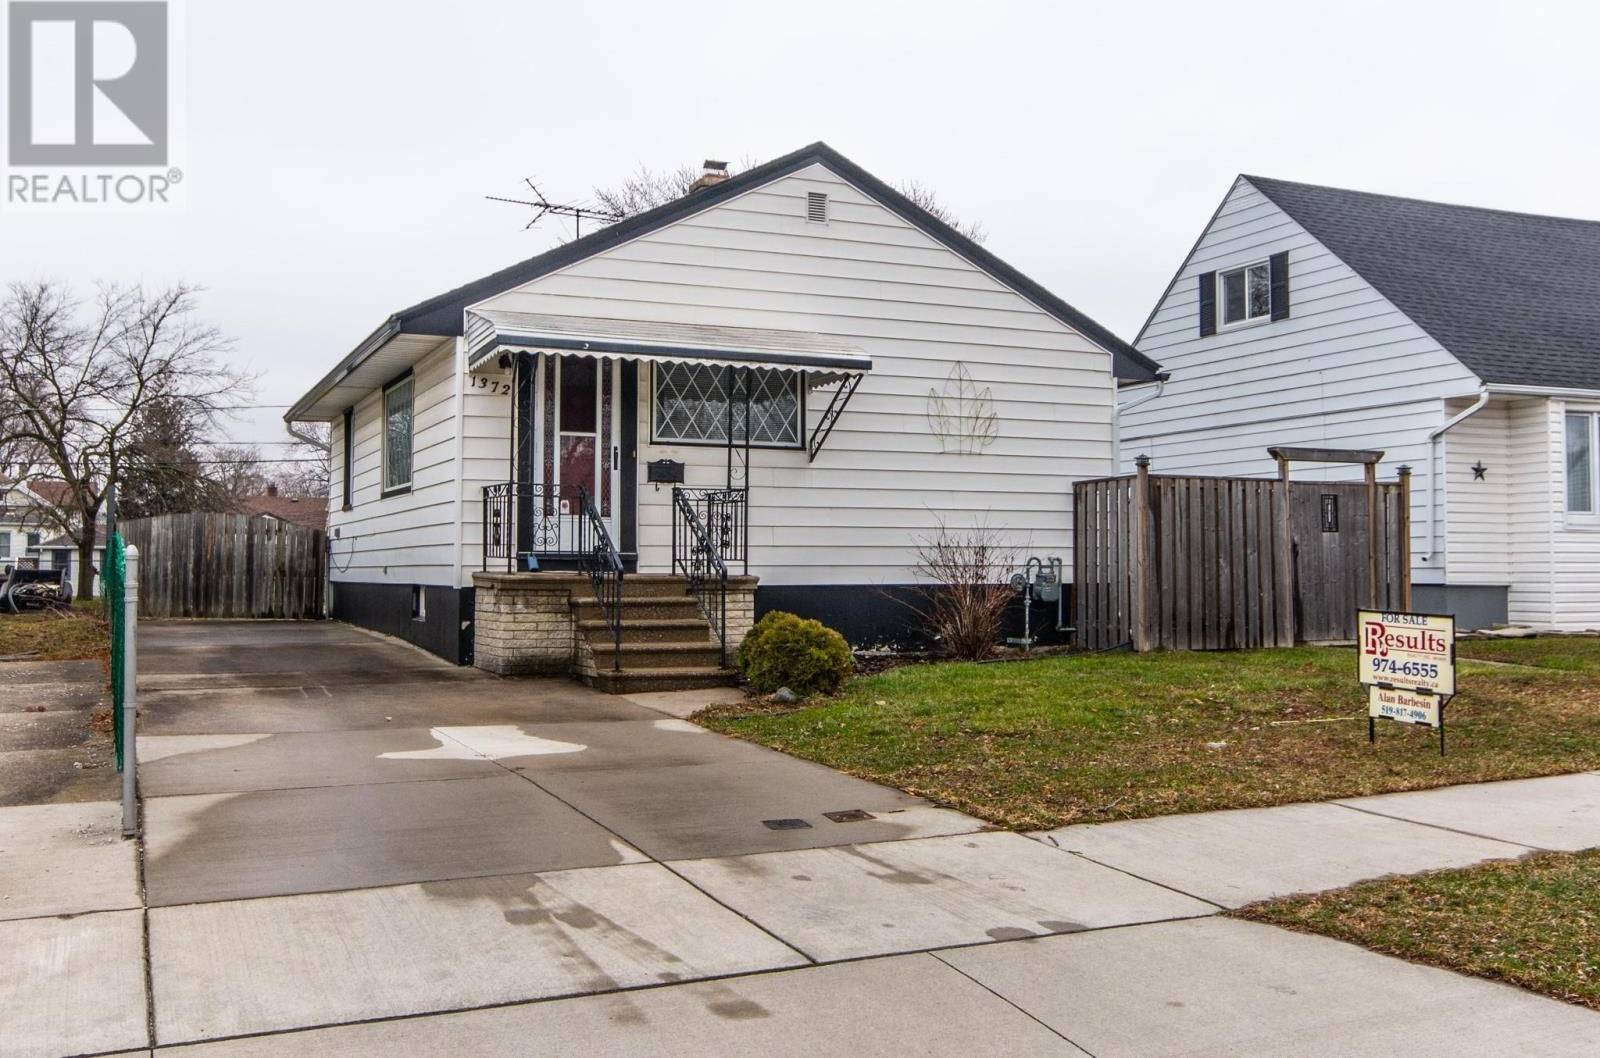 House for sale at 1372 Rossini Blvd Windsor Ontario - MLS: 20003281